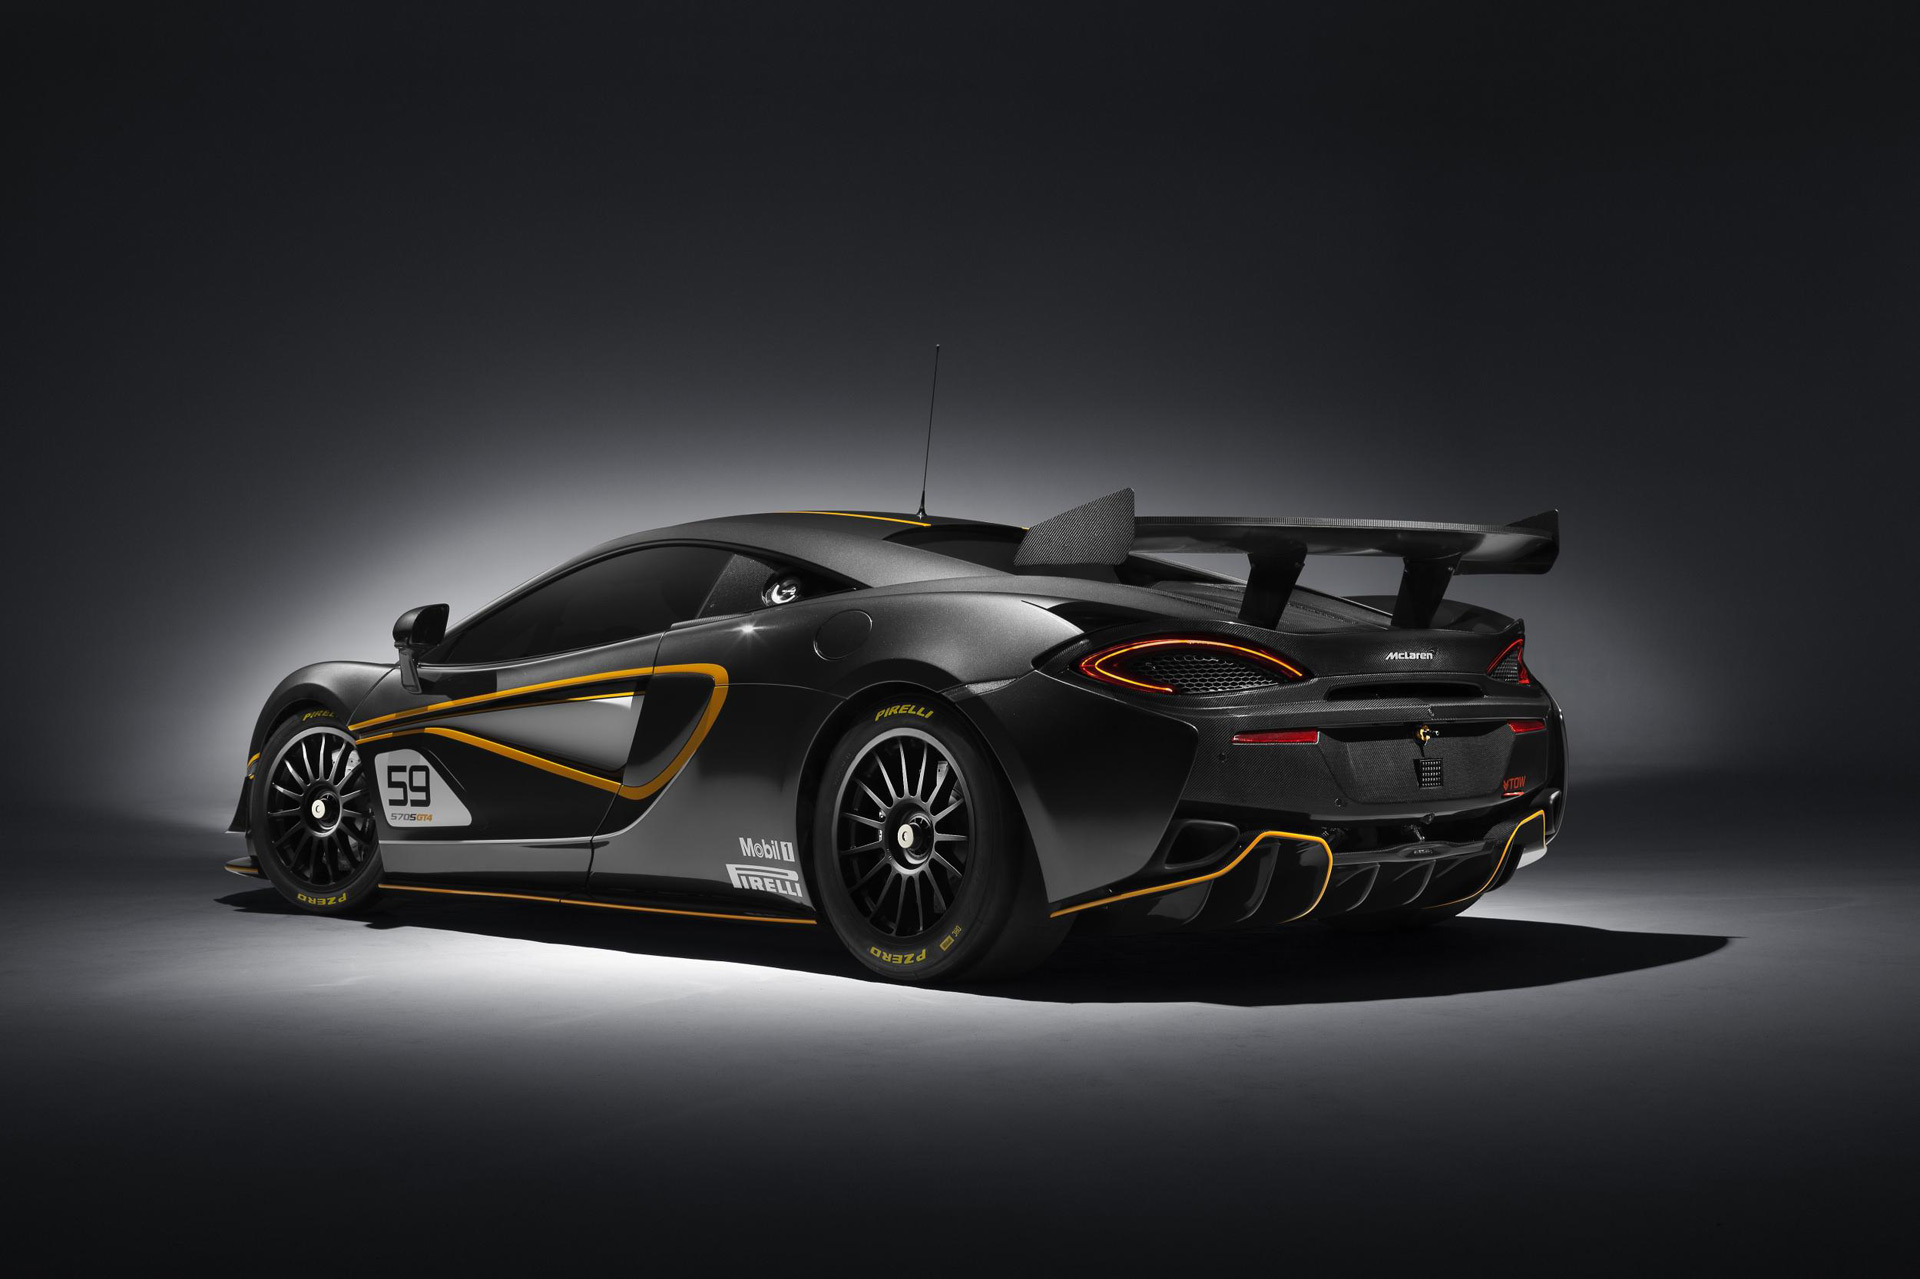 Mercedes Glc Coupe Spied Mclaren 570s Gt4 Revealed